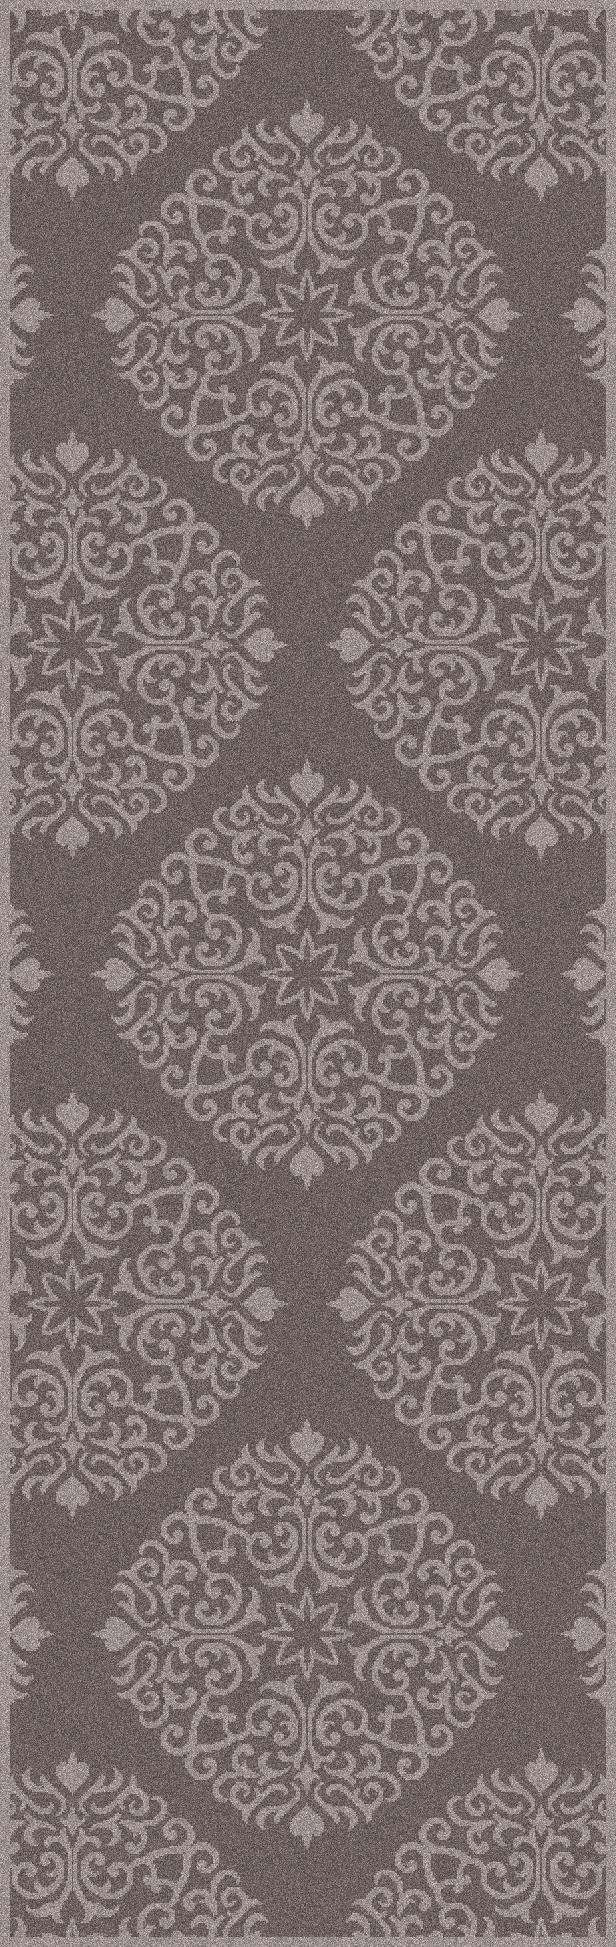 "Surya Chapman Lane 2'6"" x 8' - Item Number: CHLN9007-268"